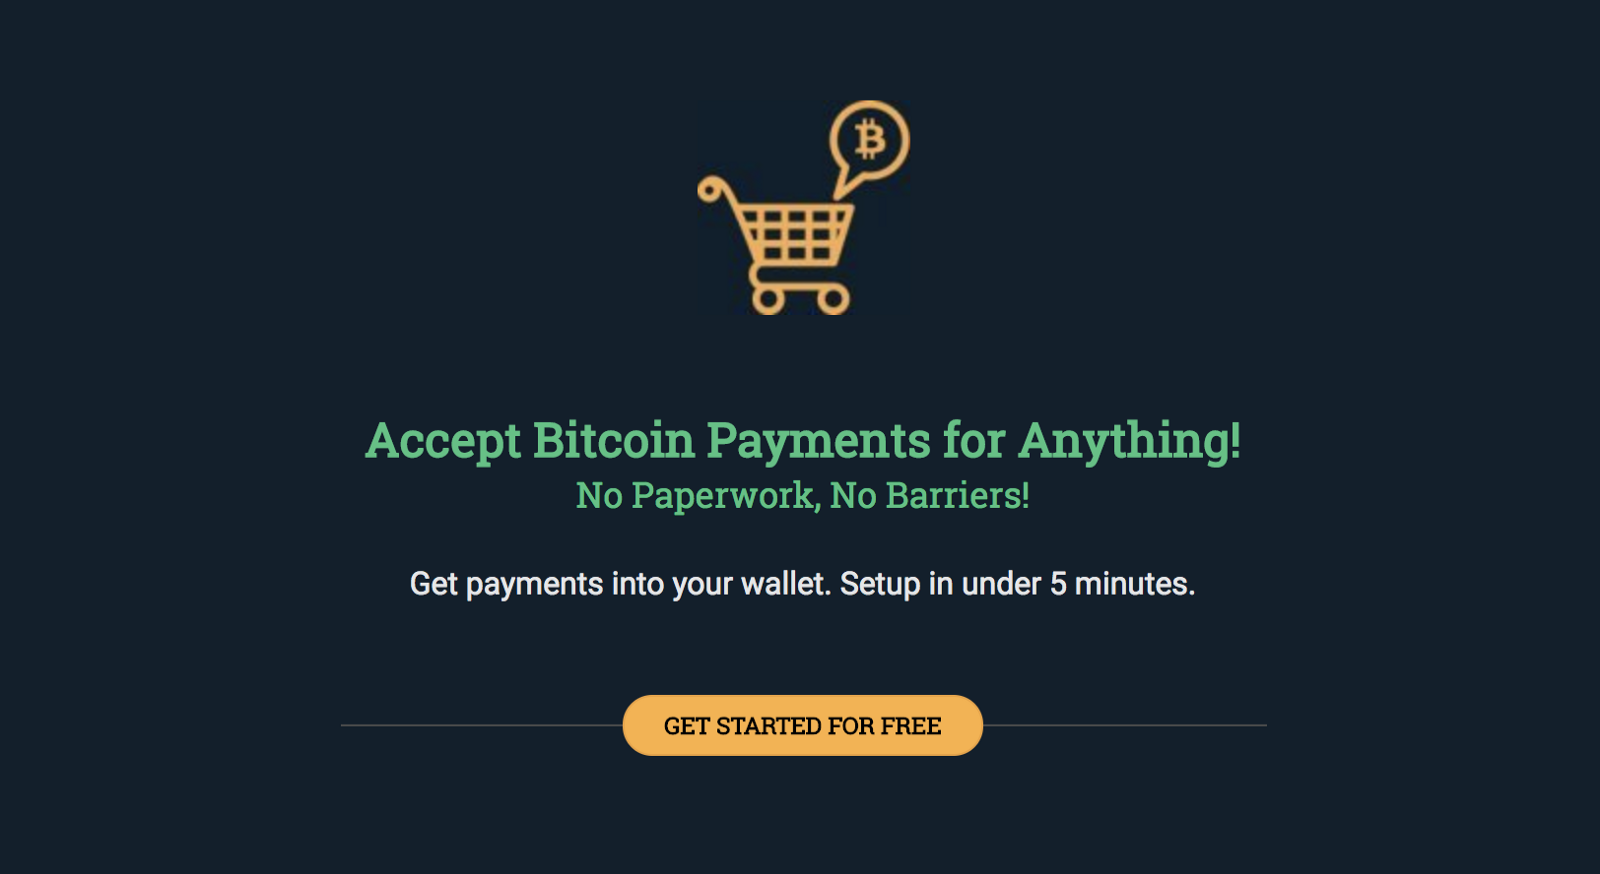 Get free bitcoin donations